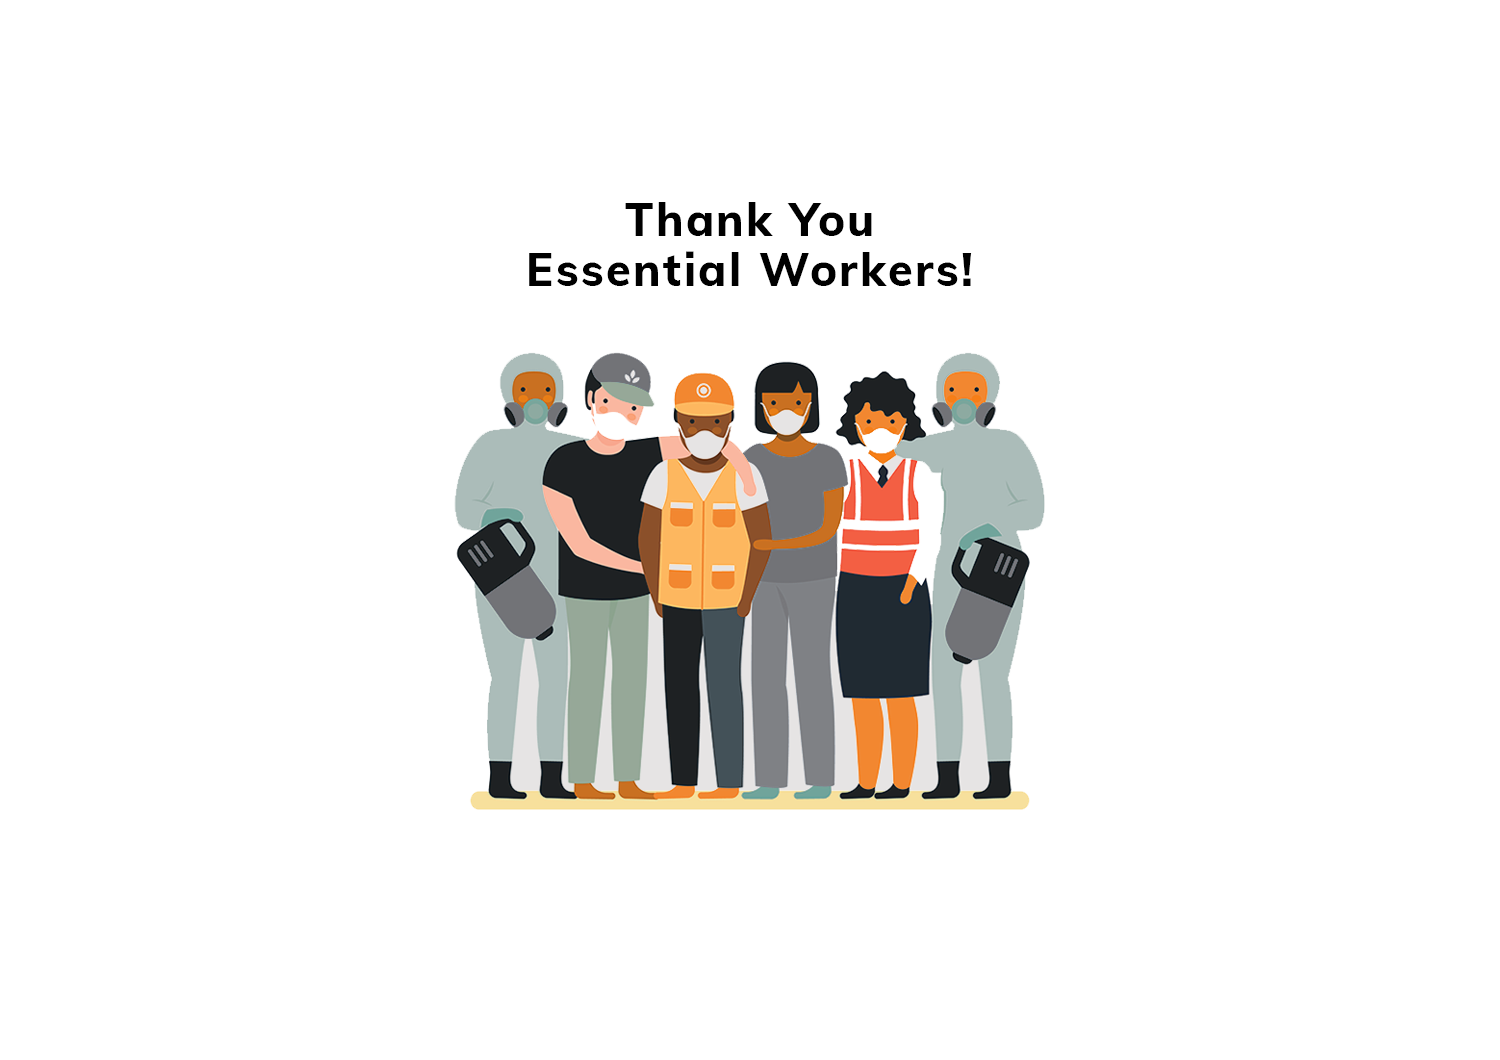 Thank you to the essential frontline workers who keep this country moving forward!